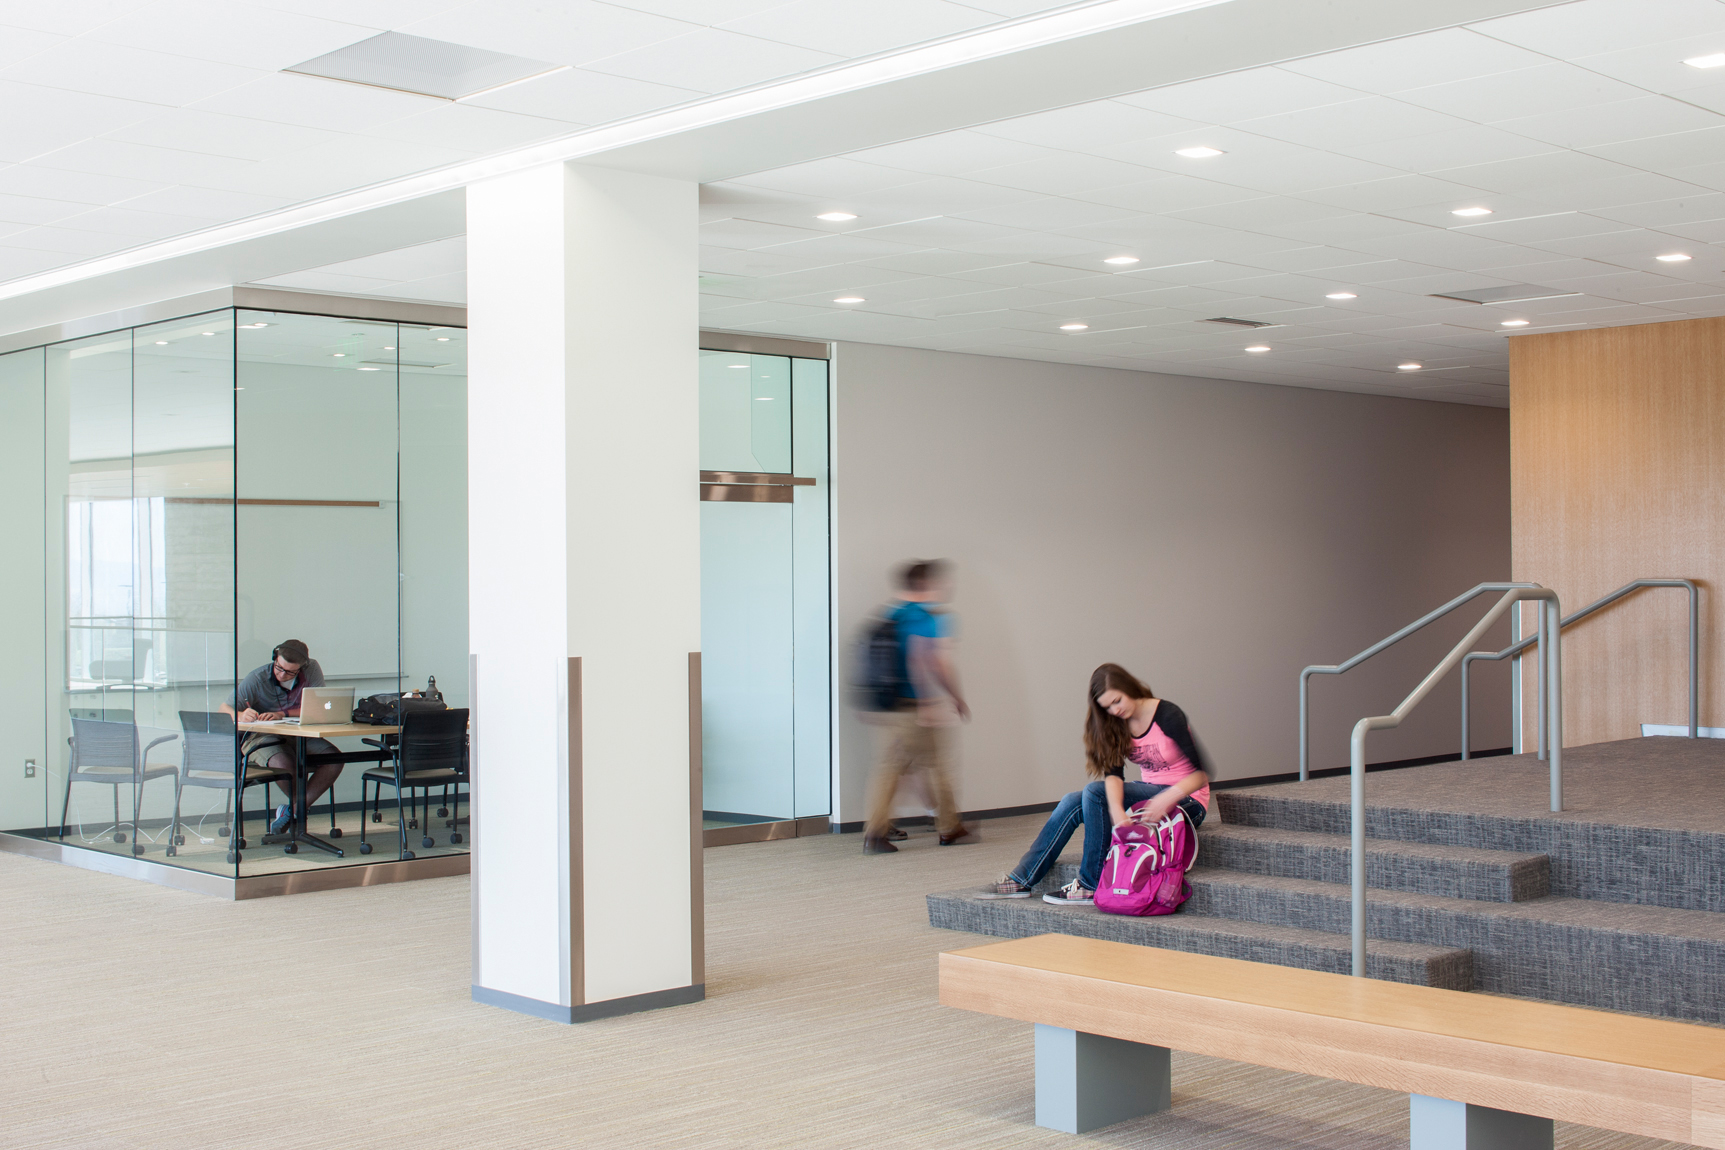 Interior view of college classroom building with student activity and transparent study rooms.